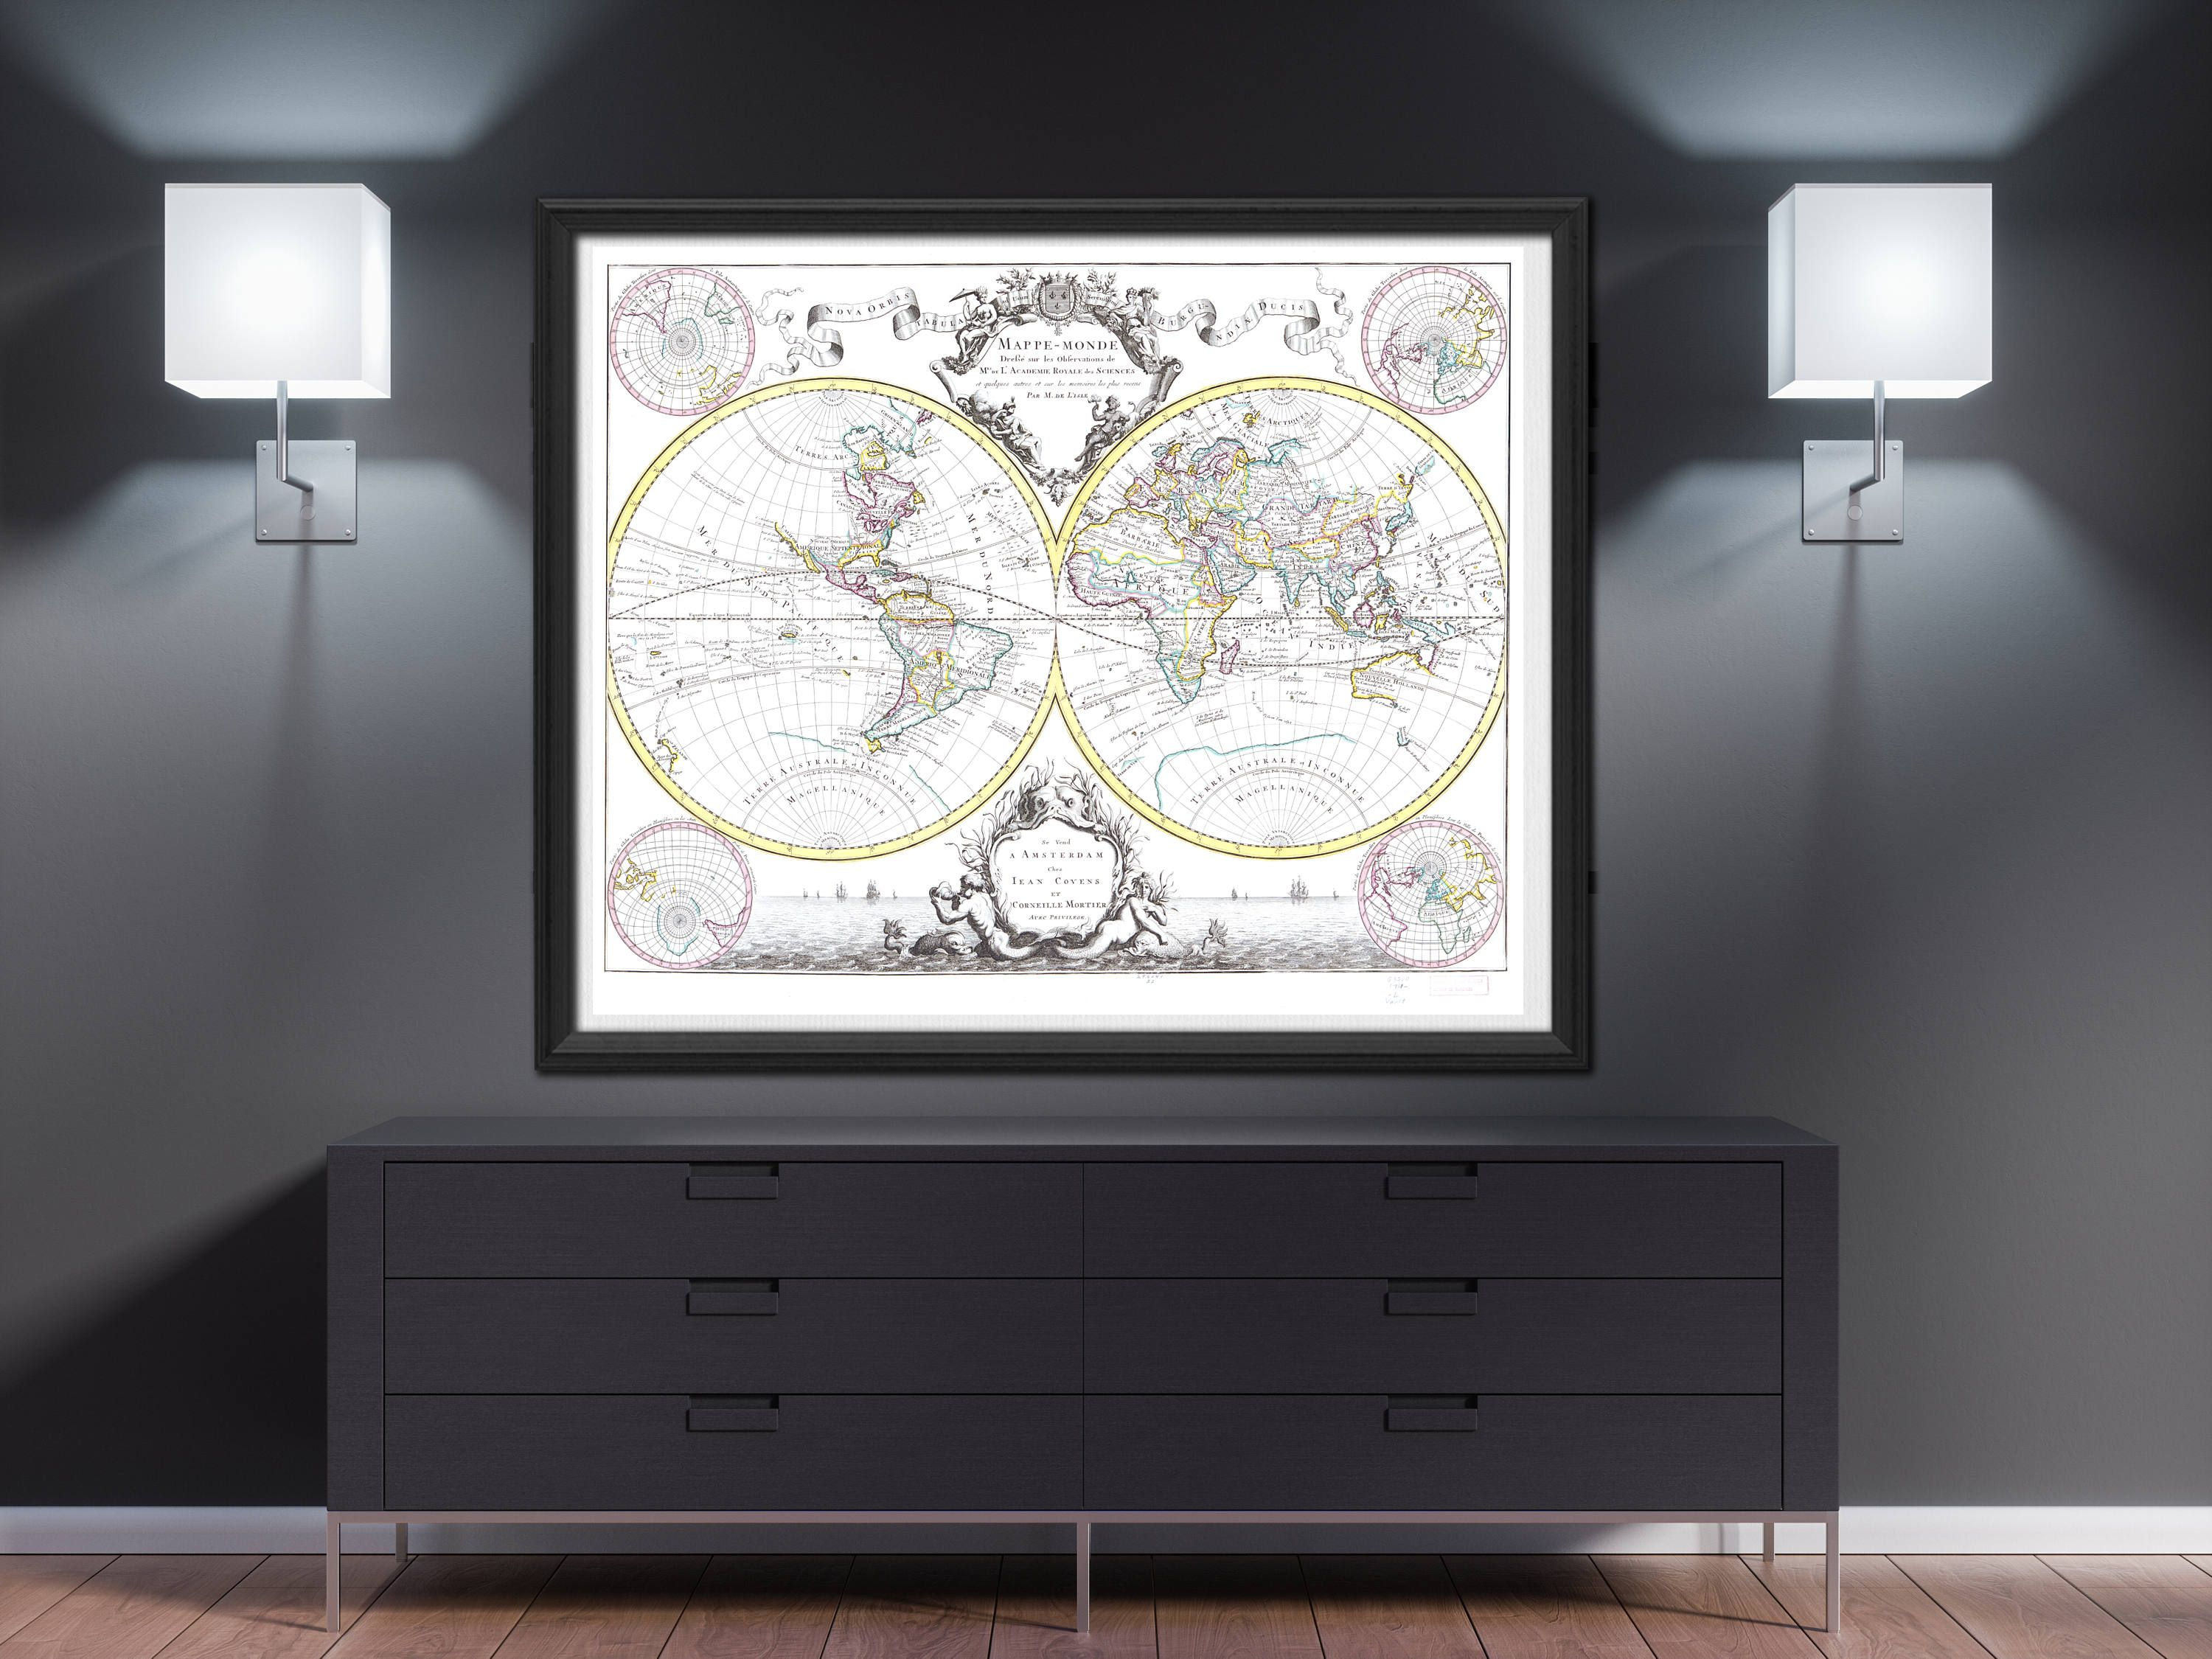 World map wall art 1665 worldmap poster travel gift wanderlust gift excited to share the latest addition to my etsy shop world map wall art 1665 vintage world map art old map art living room decoration antique world gumiabroncs Gallery